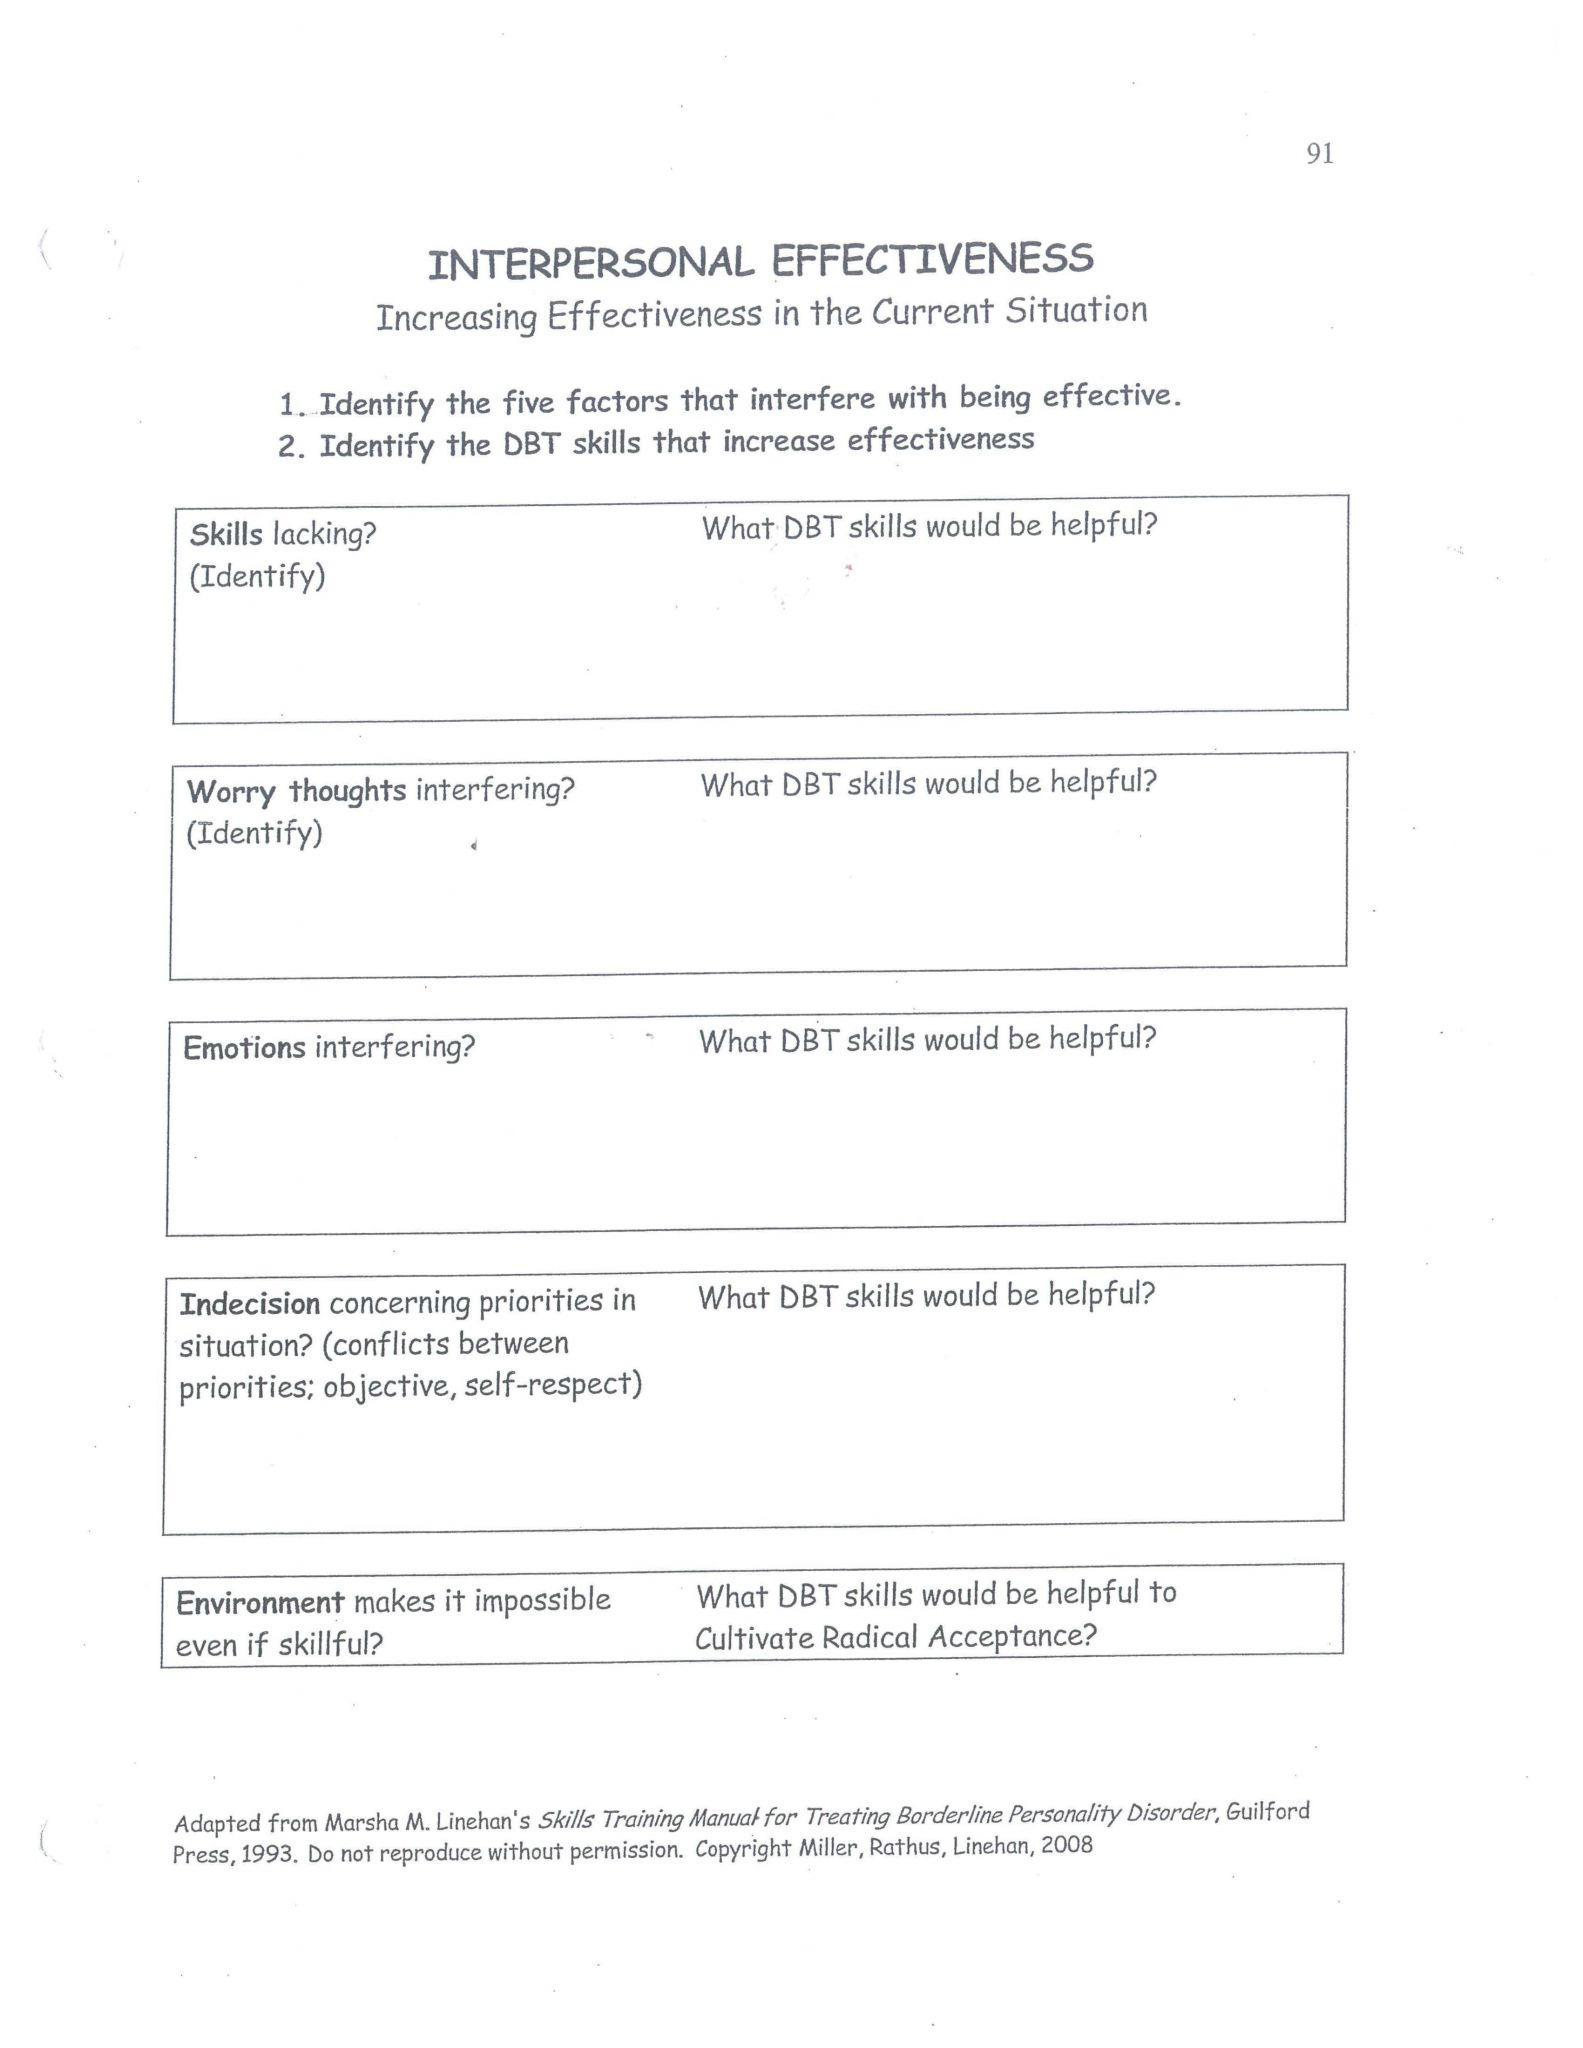 Dear Man Dbt Worksheet